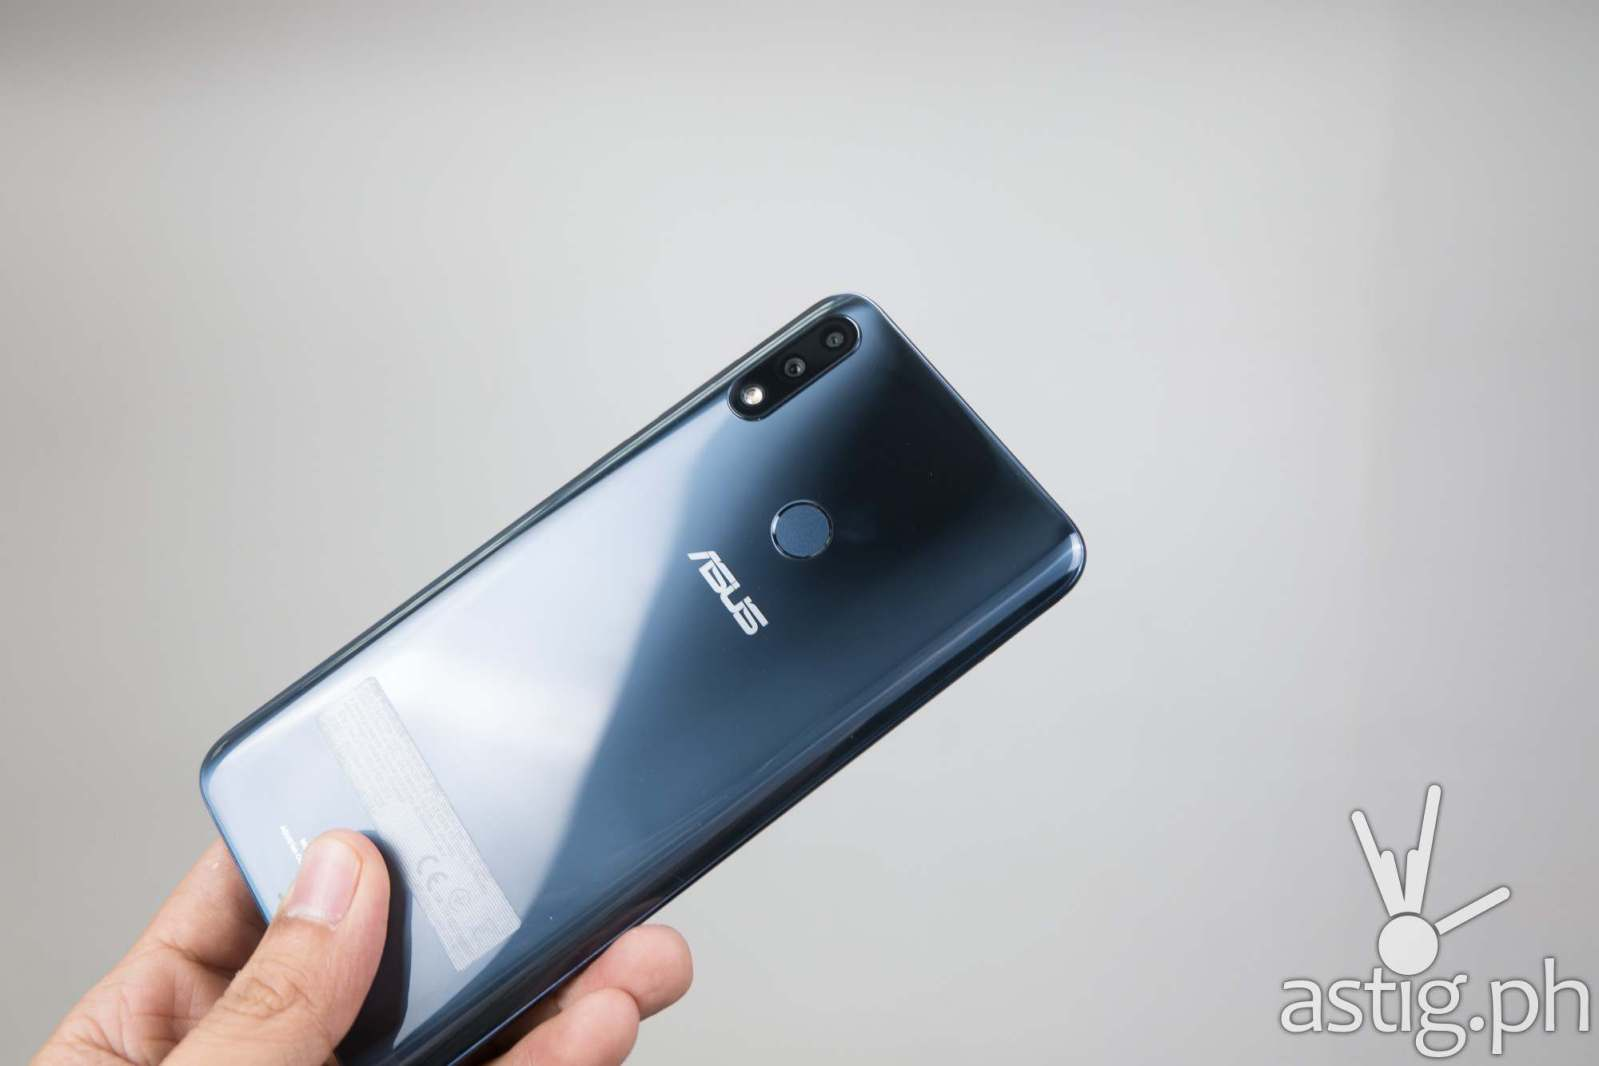 Glass back - ASUS ZenFone Max Pro M2 (Philippines)